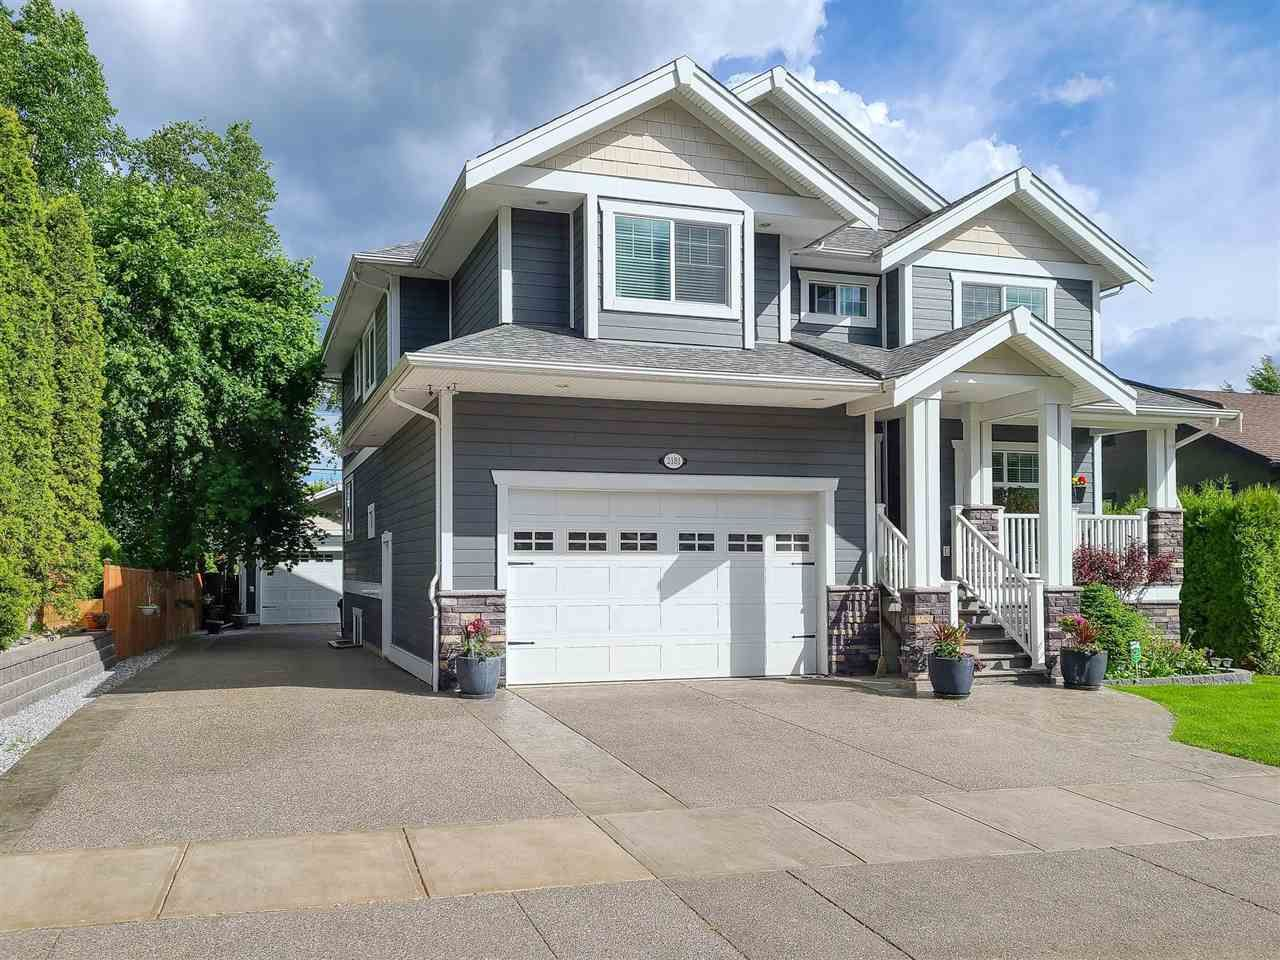 """Main Photo: 2181 LAURIER Crescent in Prince George: Crescents House for sale in """"CRESENTS"""" (PG City Central (Zone 72))  : MLS®# R2618434"""